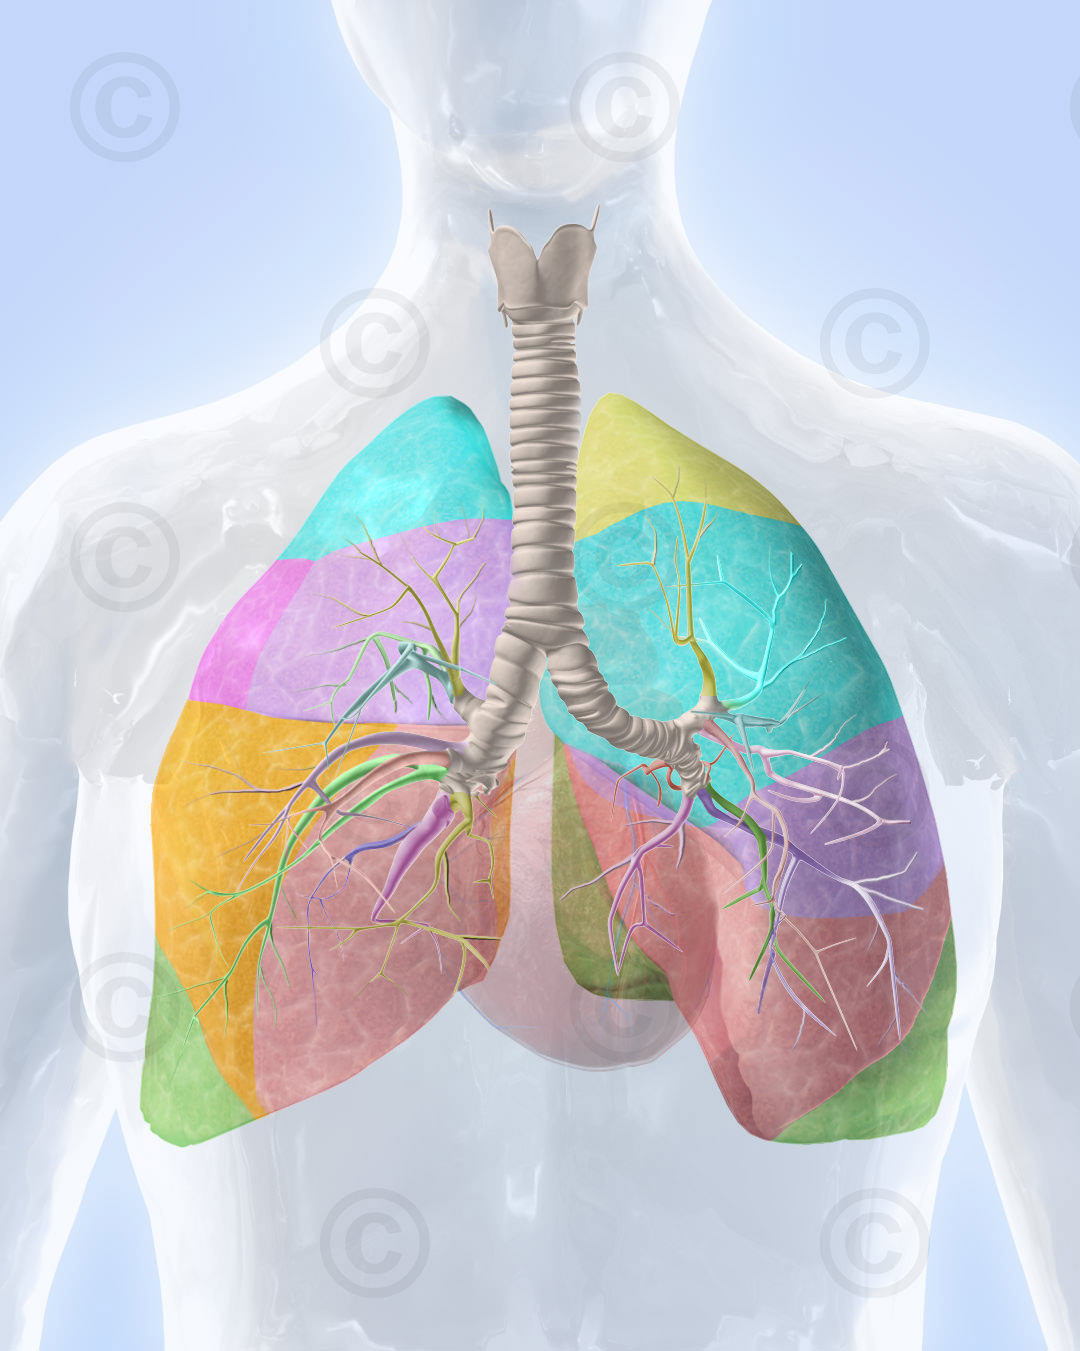 Anatomy of the human lung